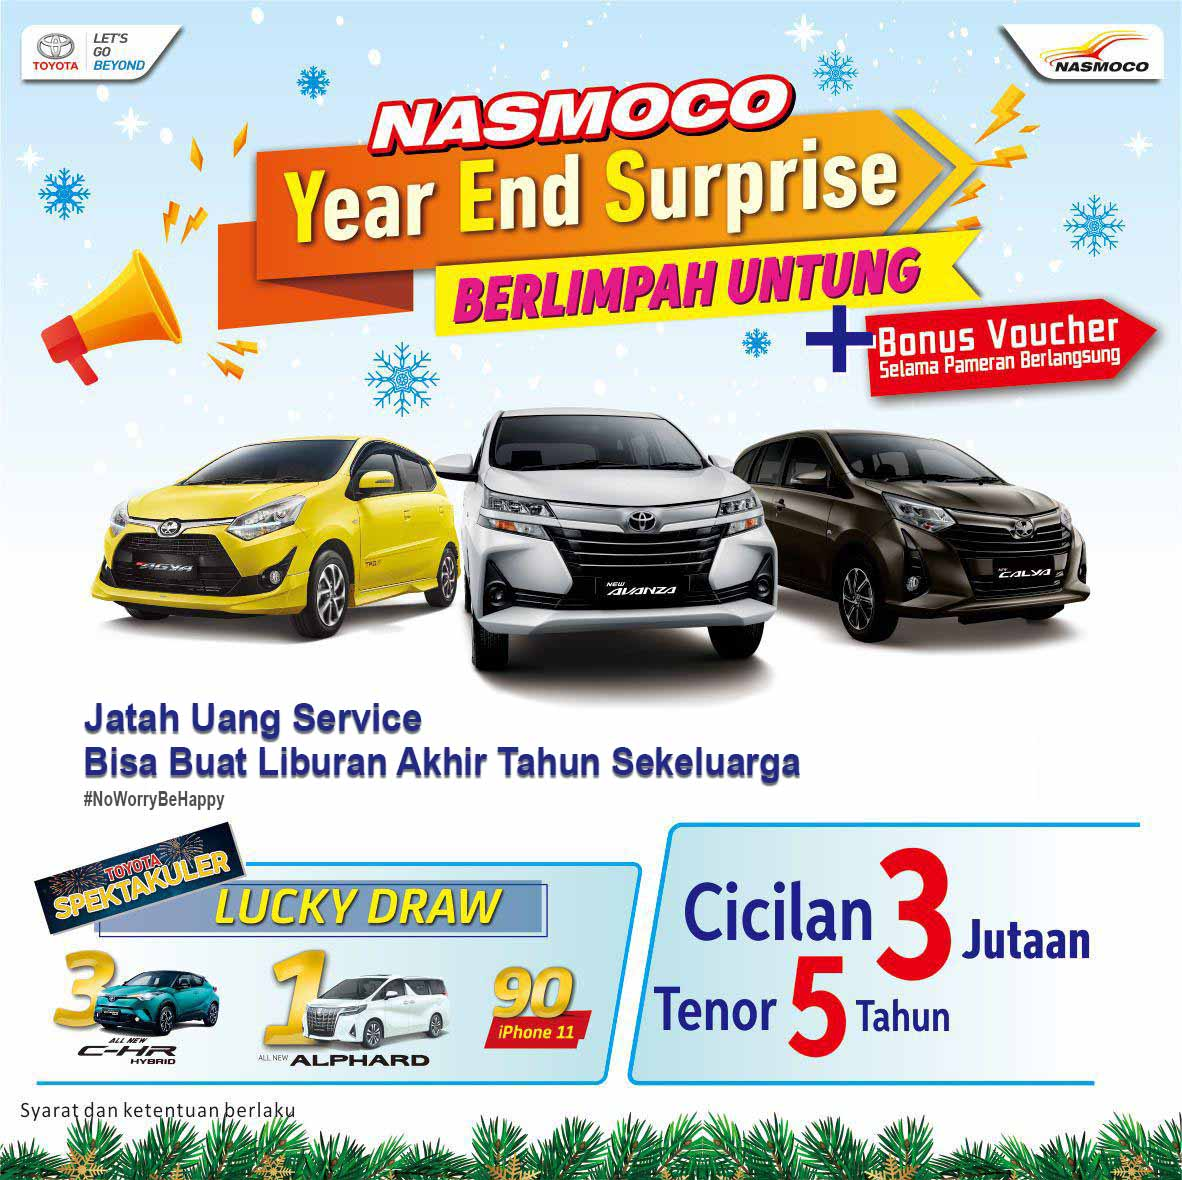 Promo Toyota Year End Surprise Berlimpah Untung Di Dealer Toyota Solo